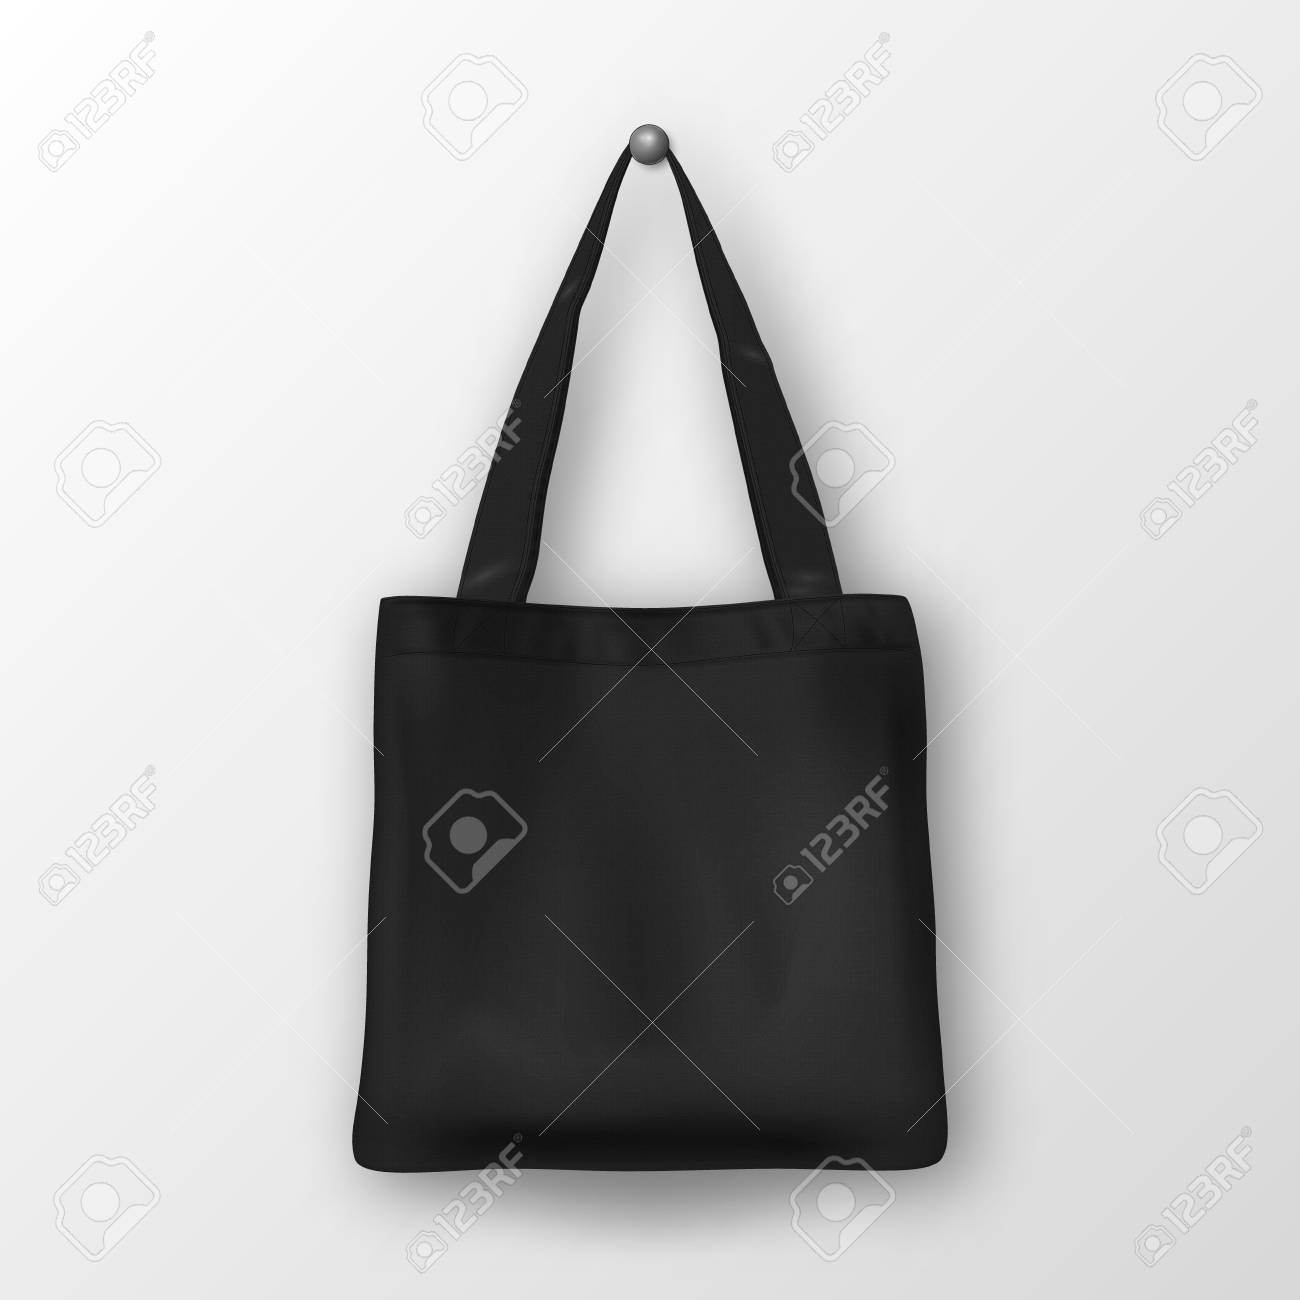 Realistic Vector Black Empty Textile Tote Bag Closeup Isolated